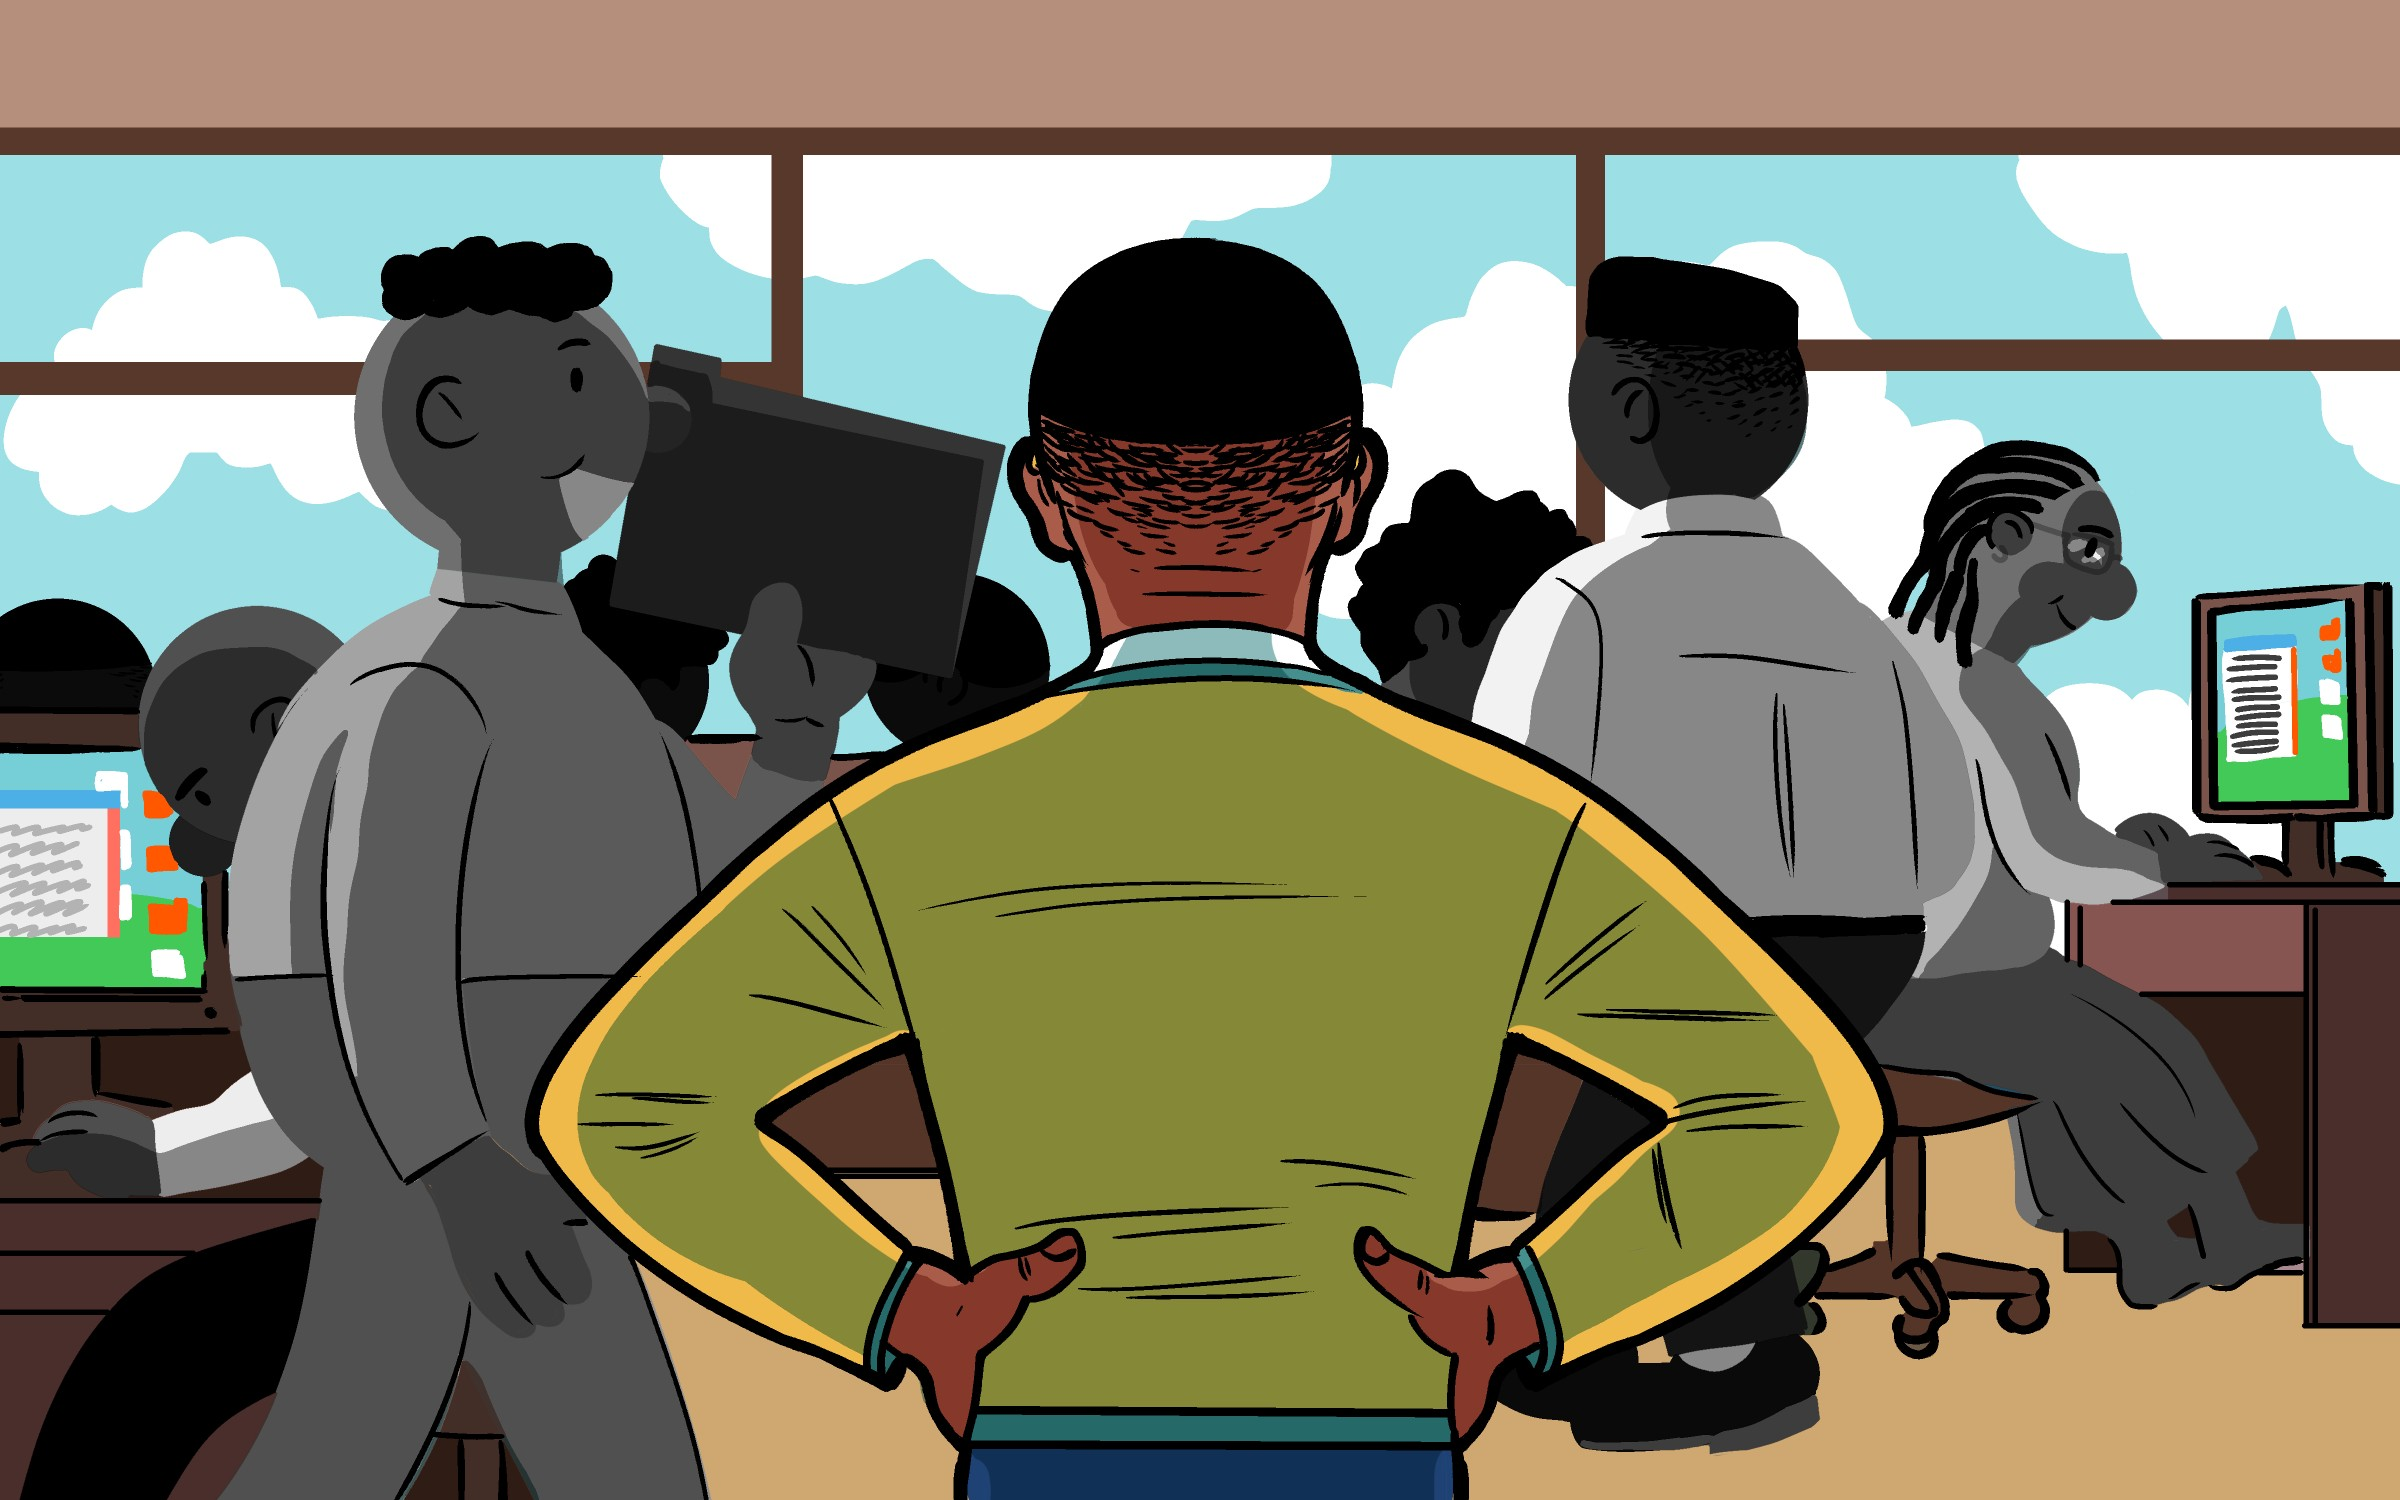 A Black person with very short hair standing with their back to us with their hands on their hips. They're facing an office populated with all Black coworkers. Large glass windows show a partly cloudy sky.